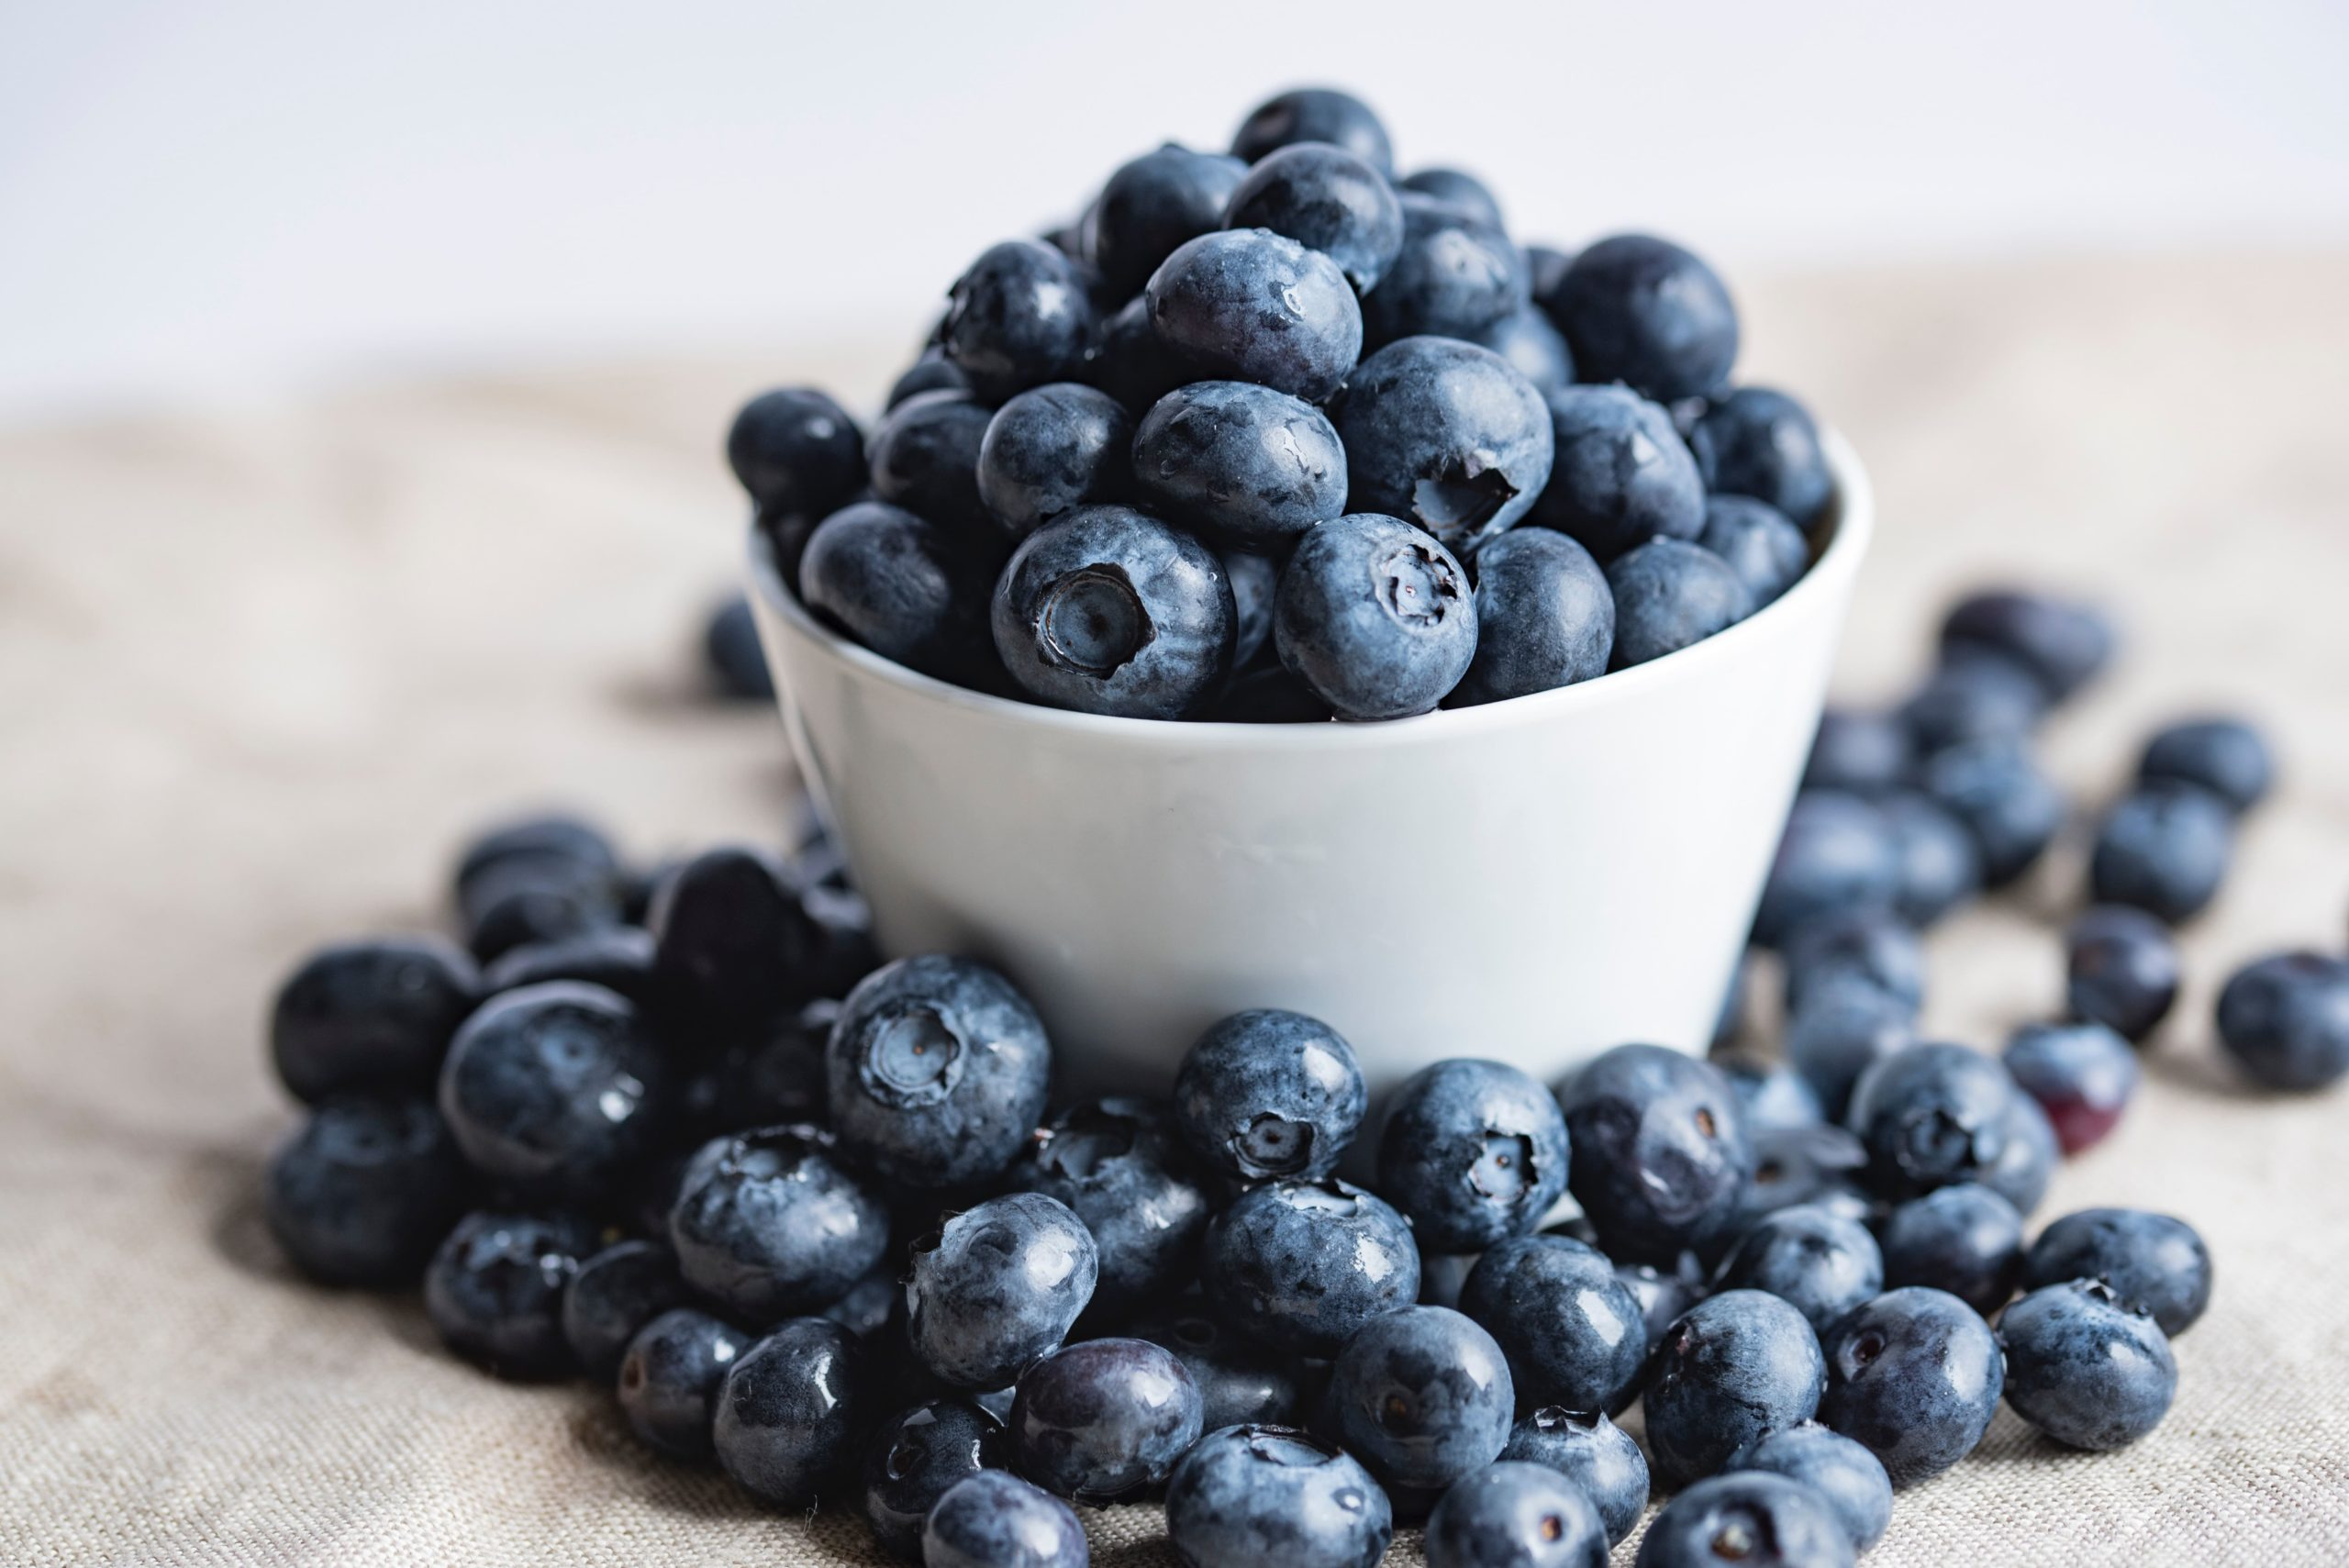 Blueberries are lower in anthocyanin antioxidants than bilberries